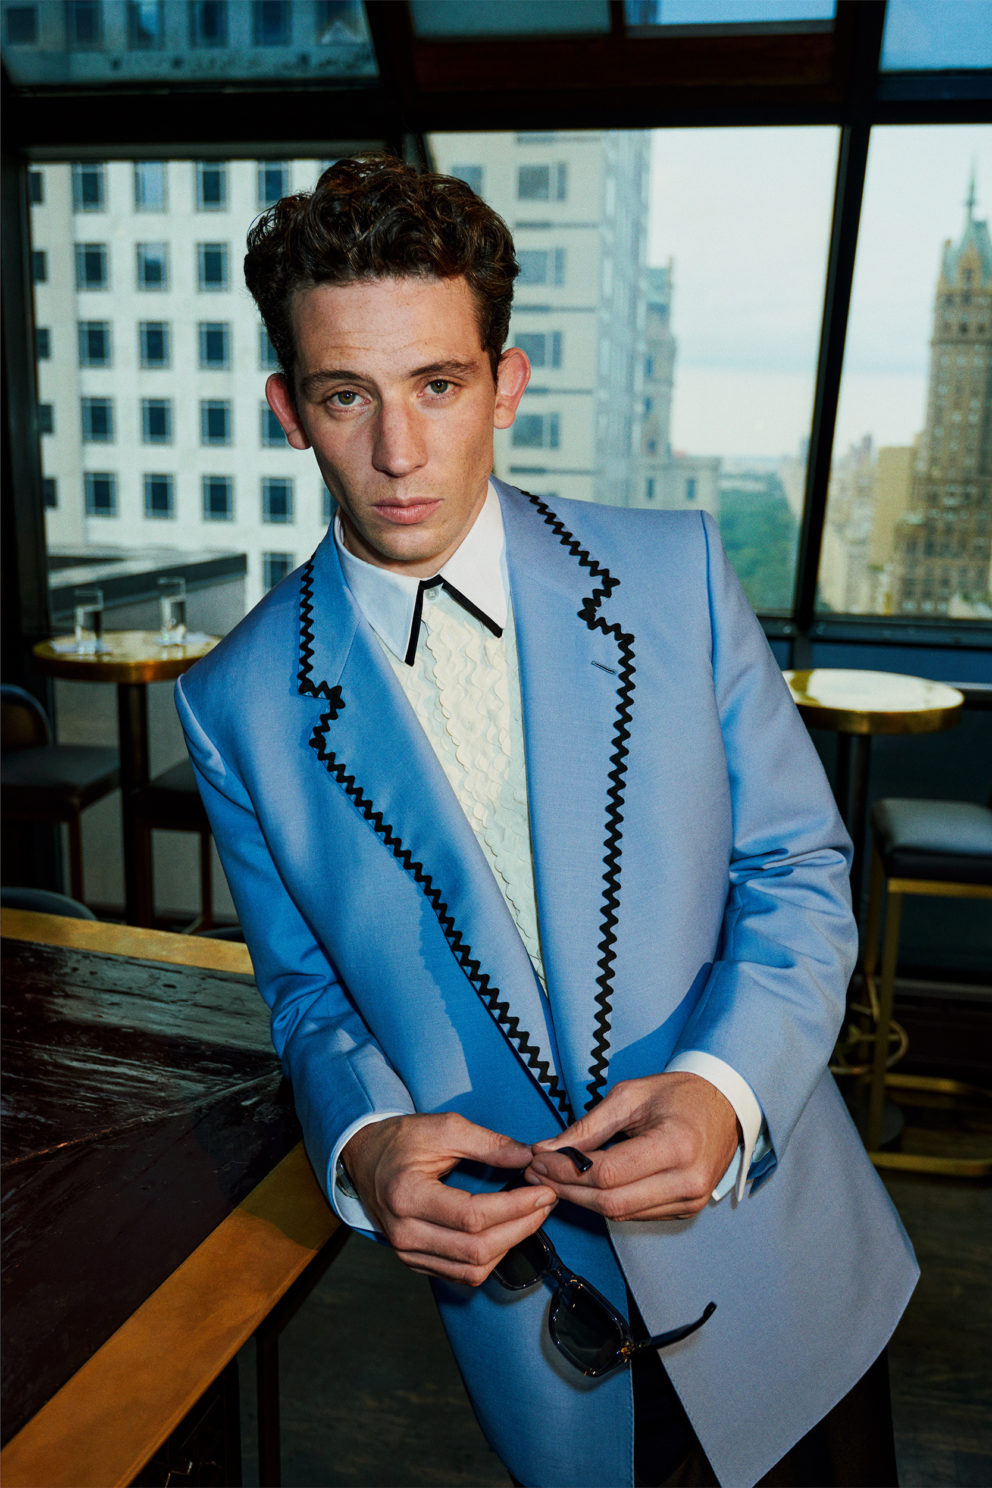 210914 0010 Met Dunhill Josh Oconnor 077 By Christian Hogstedt